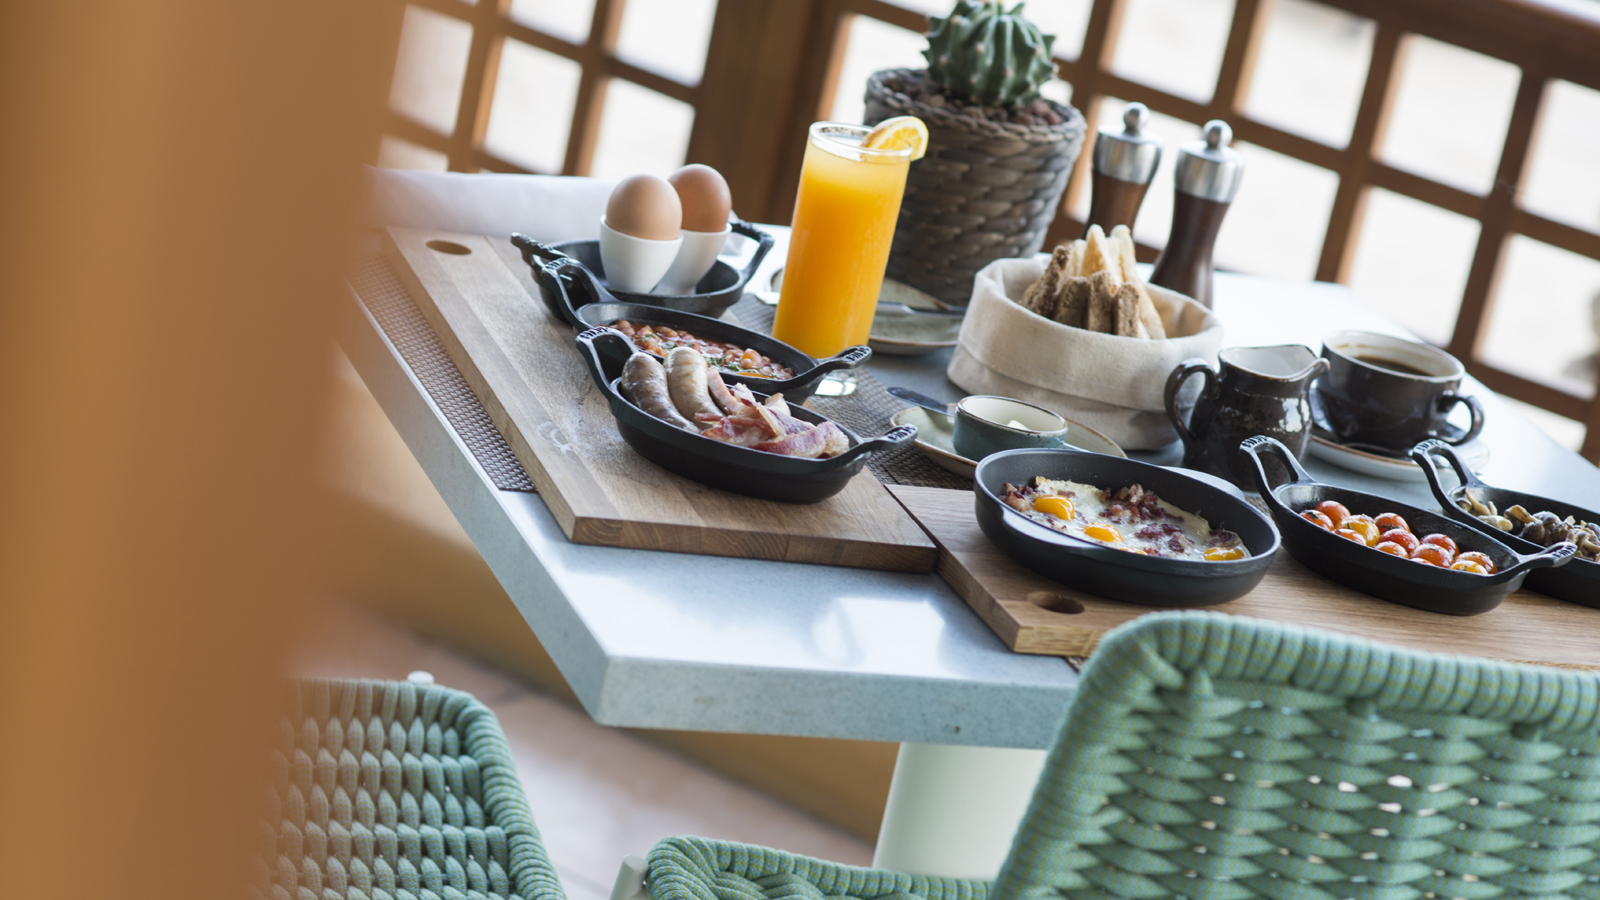 Outdoor Breakfast Dining at Pool Grill Restaurant in Doha